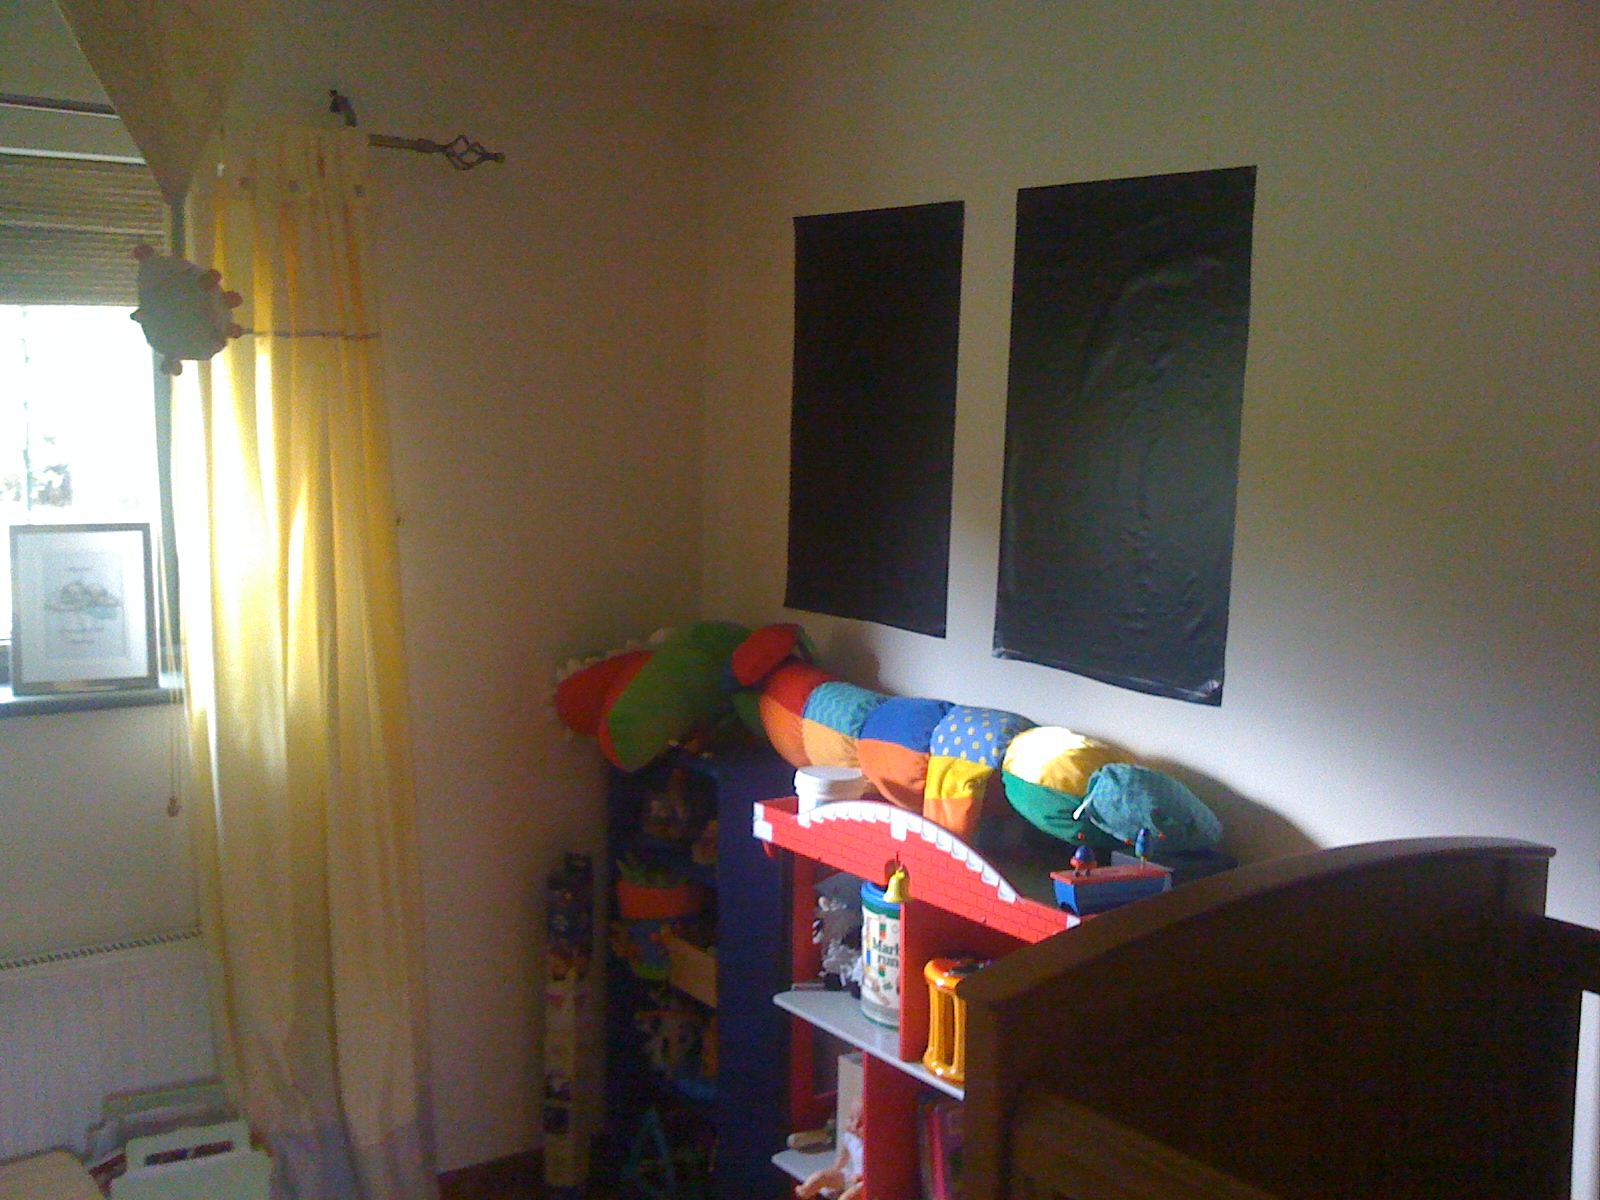 Magic Blackout Blind stuck to a wall in nursery when not in use on window